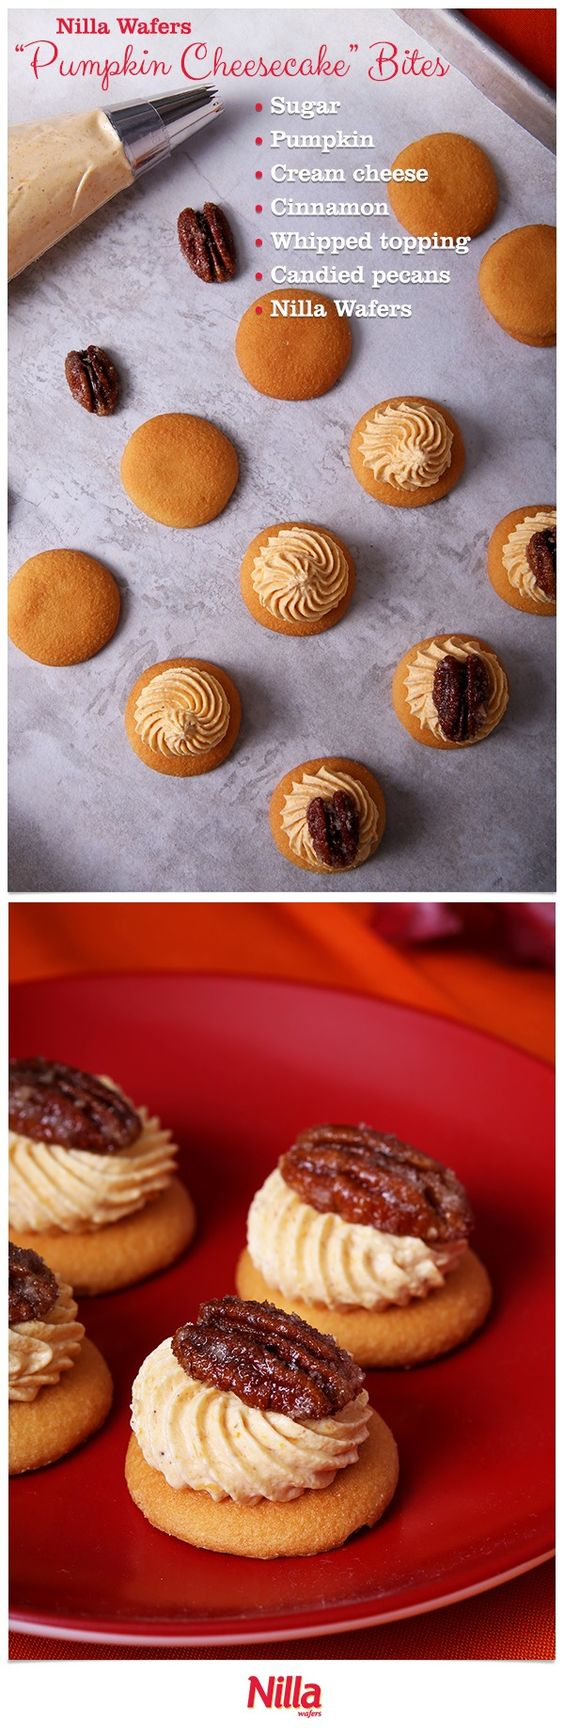 These no bake Pumpkin Cheesecake Bites only need a few ingredients and are perfect to serve at parties. Top Nilla Wafers with a mixture of pumpkin pie filling, whipped topping and cinnamon. A candied pecan as garnish completes the recipe!